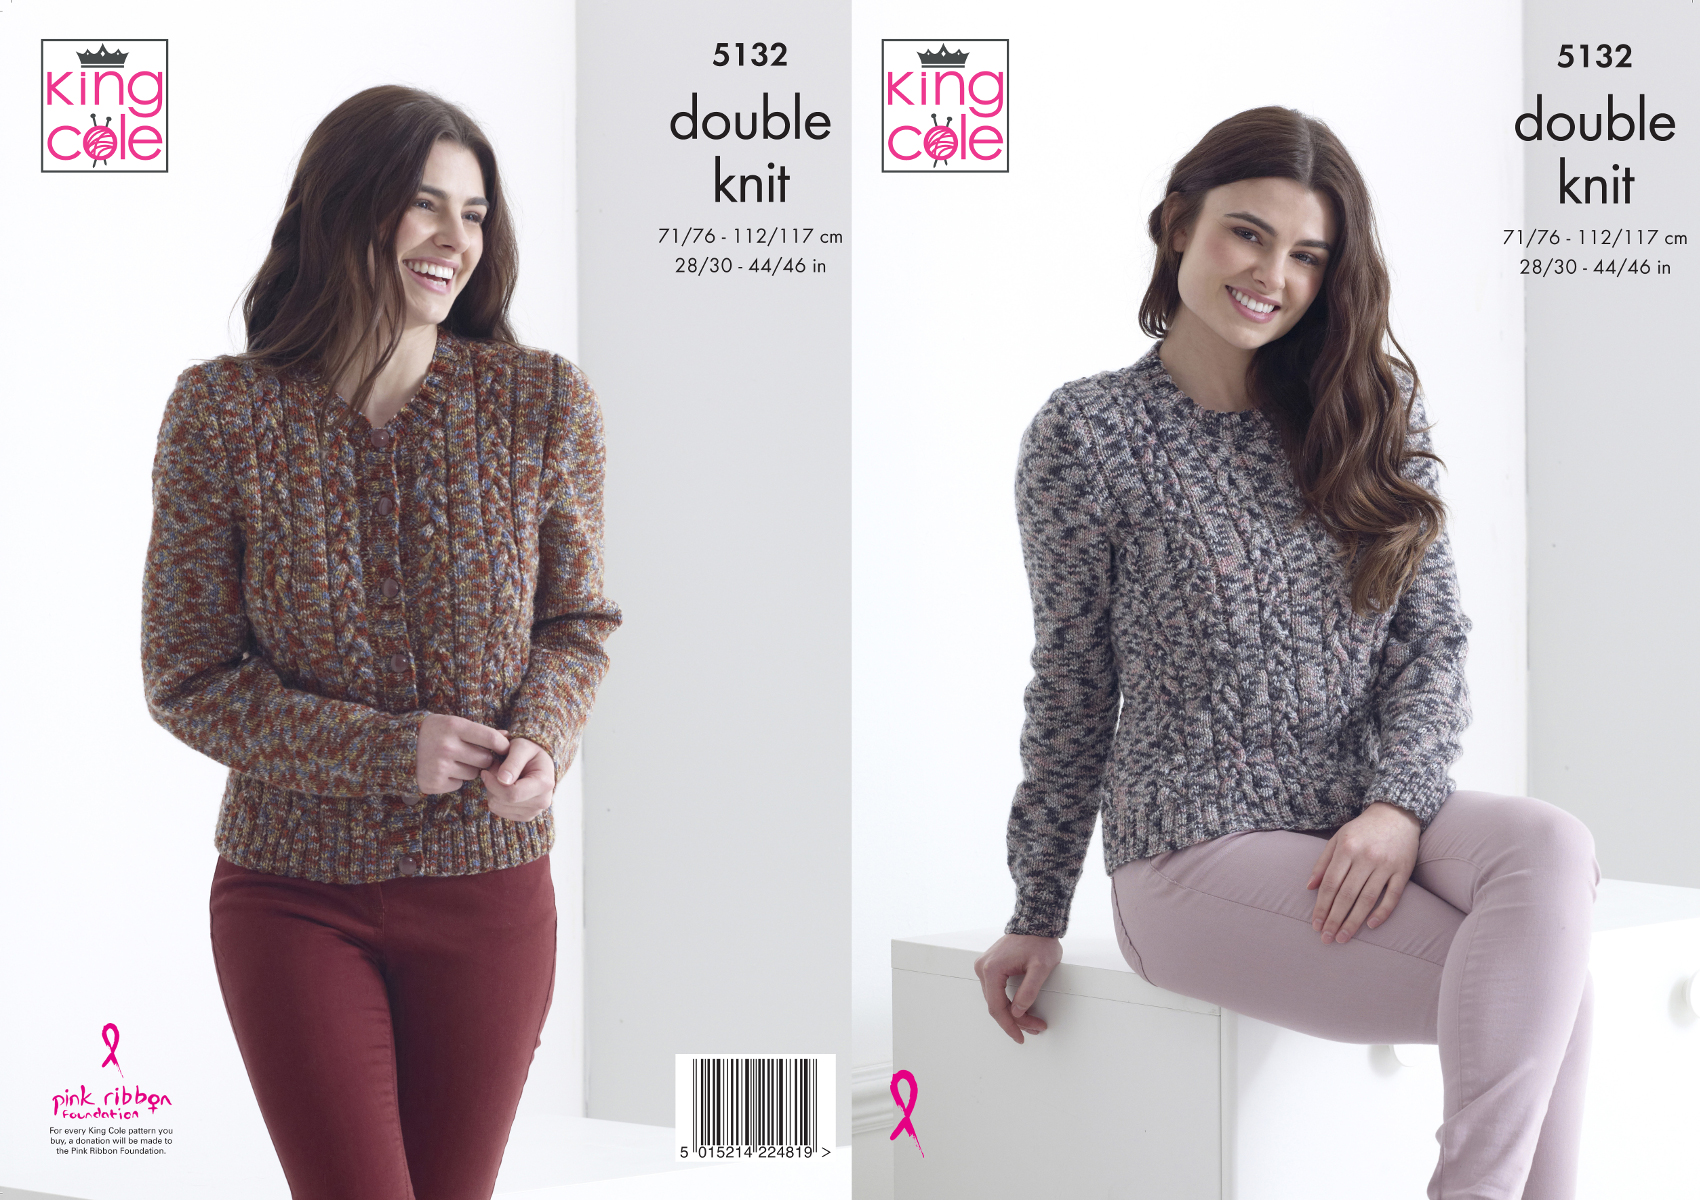 King Cole Ladies Double Knitting Pattern Womens Cable Knit Cardigan /& Top 5041